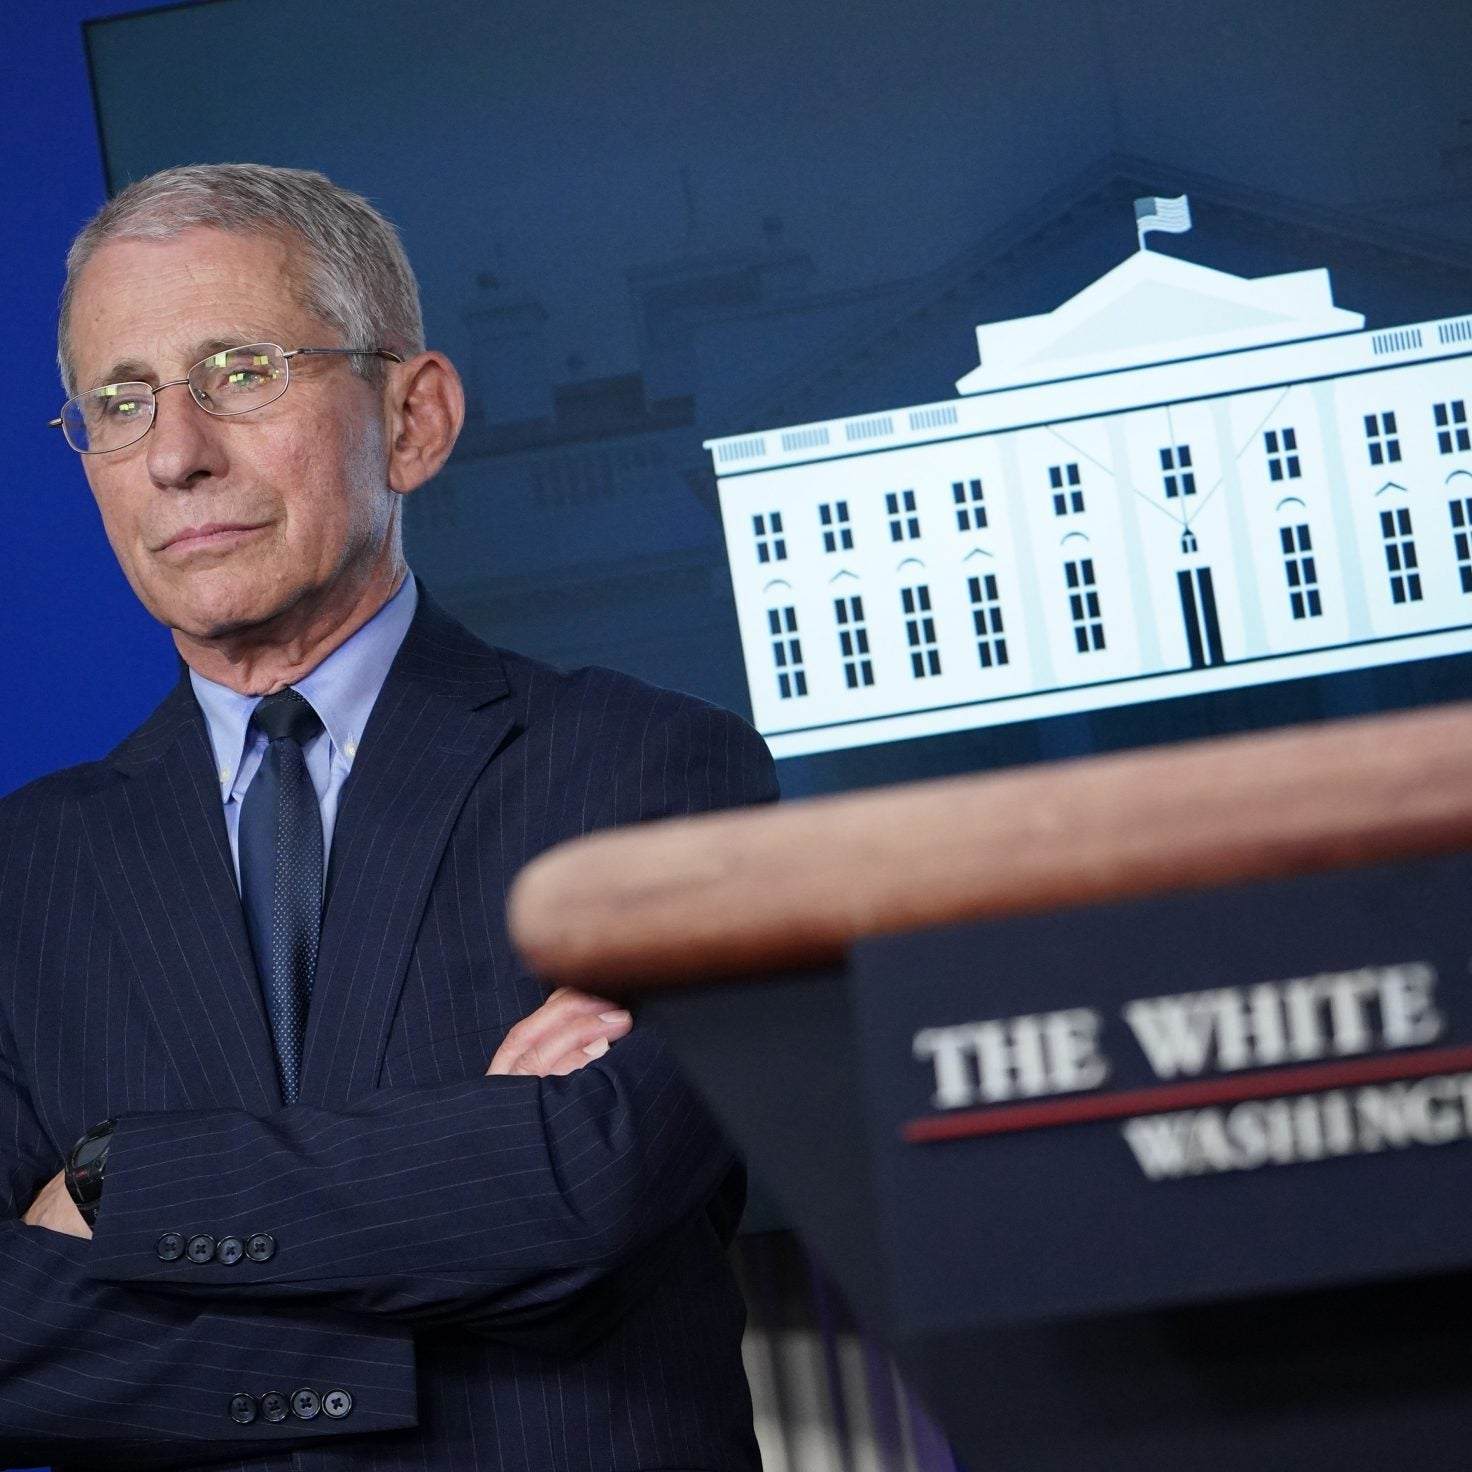 Trump Aides Look To Discredit Anthony Fauci